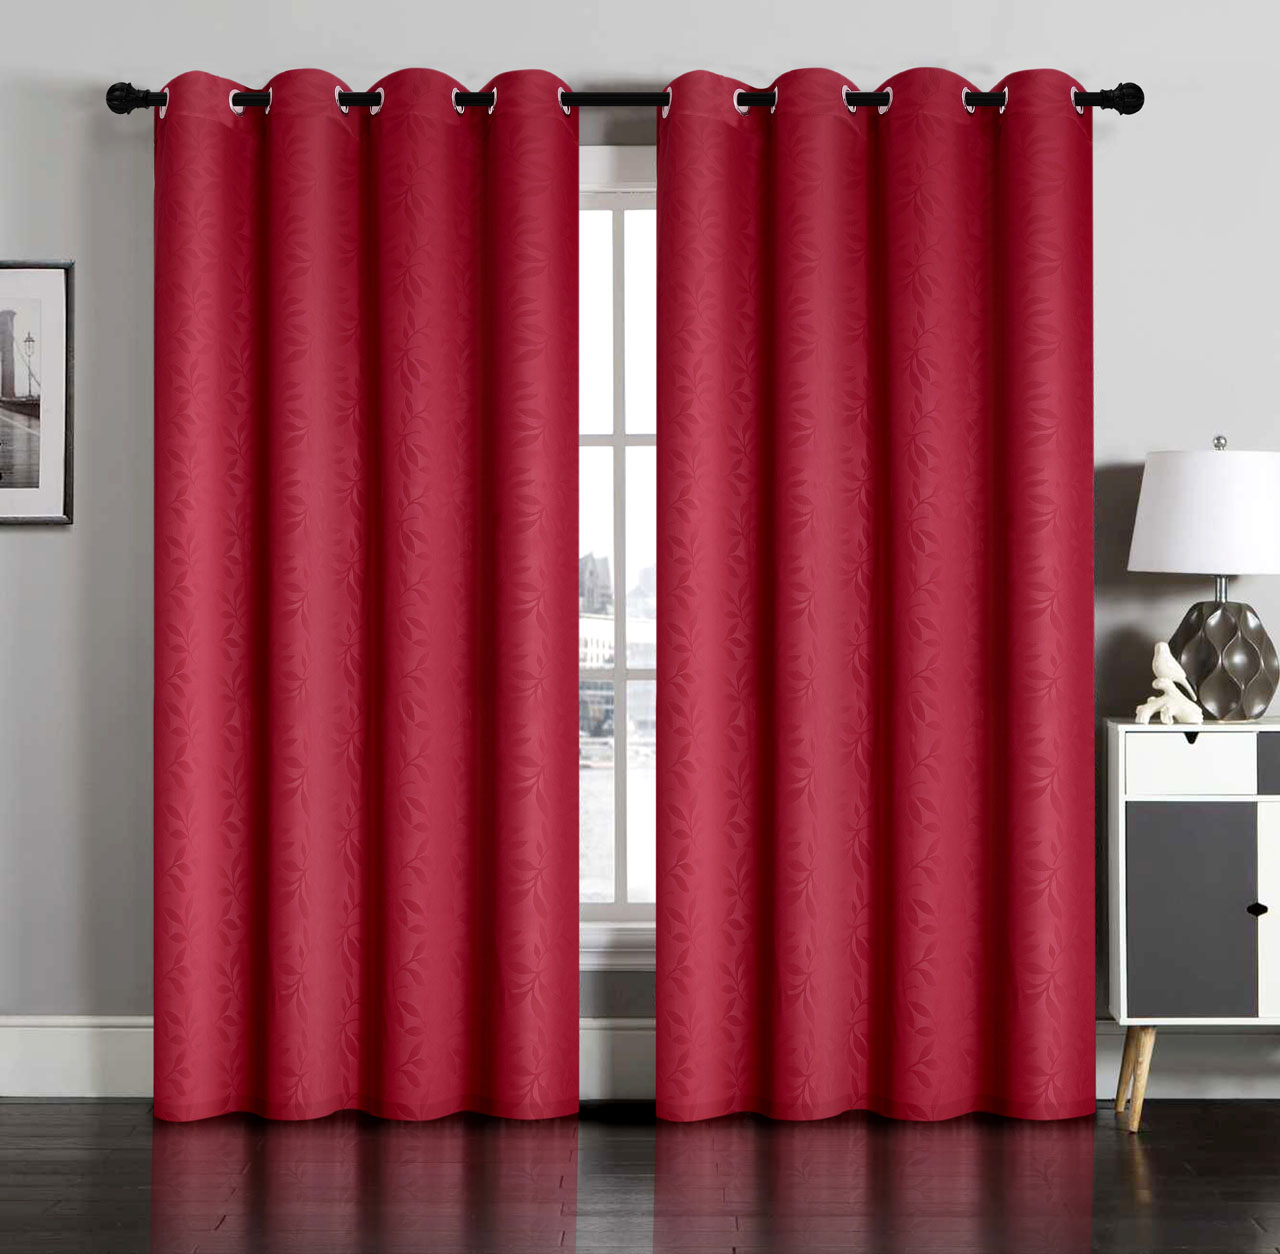 pair of susan blackout embossed window curtain panels w/grommets